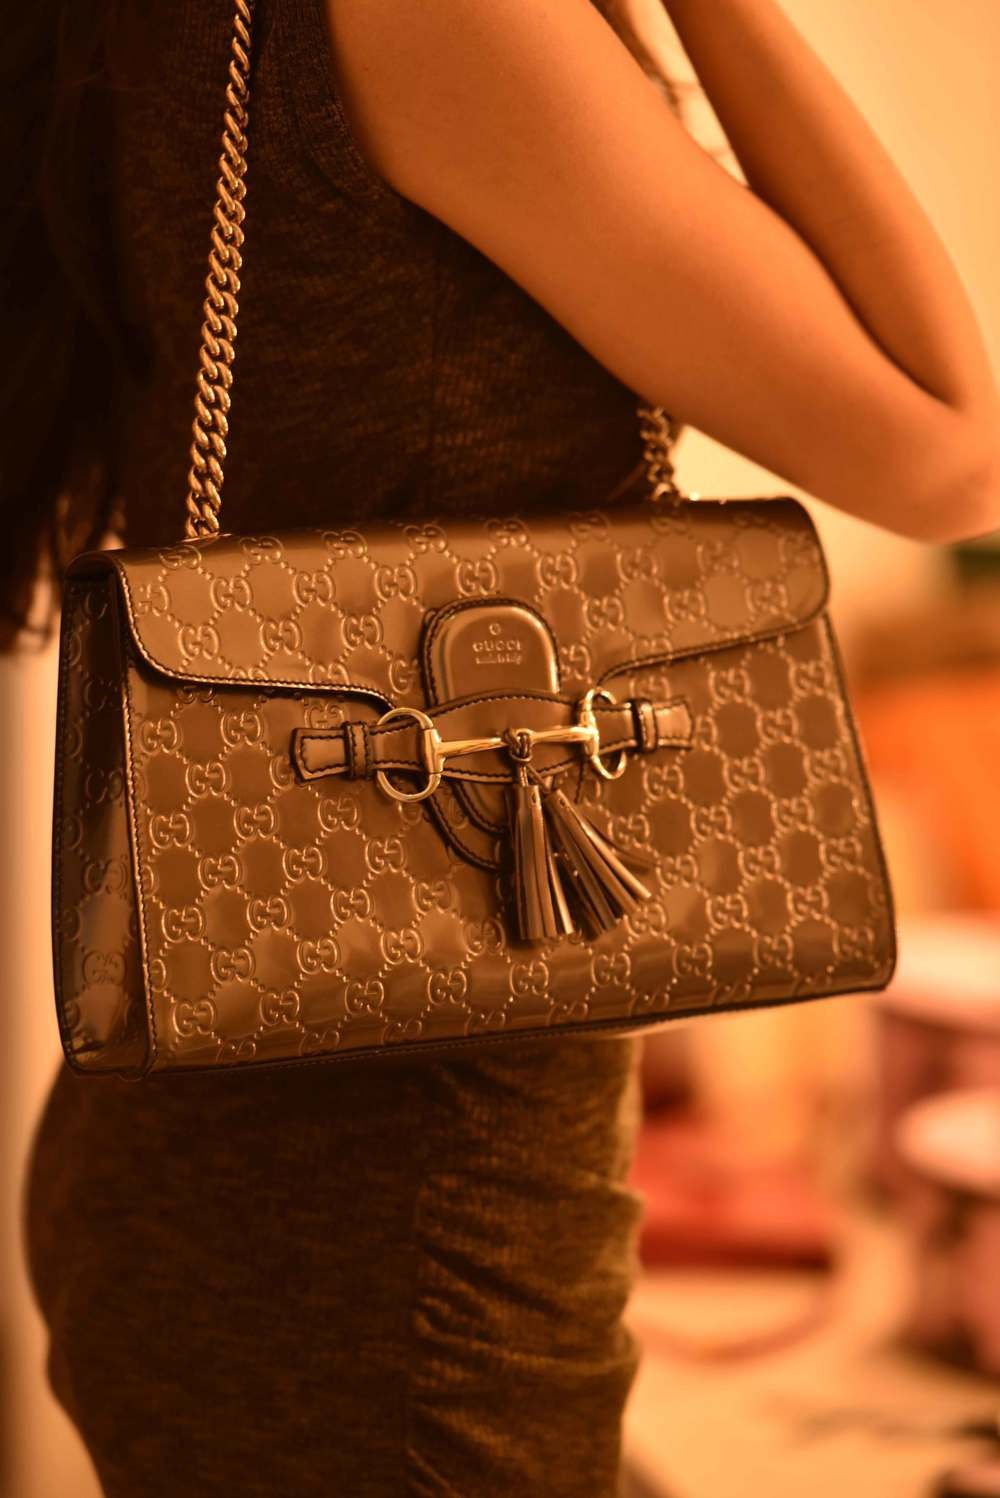 A formal evening Gucci bag, image©gunjanvirk.